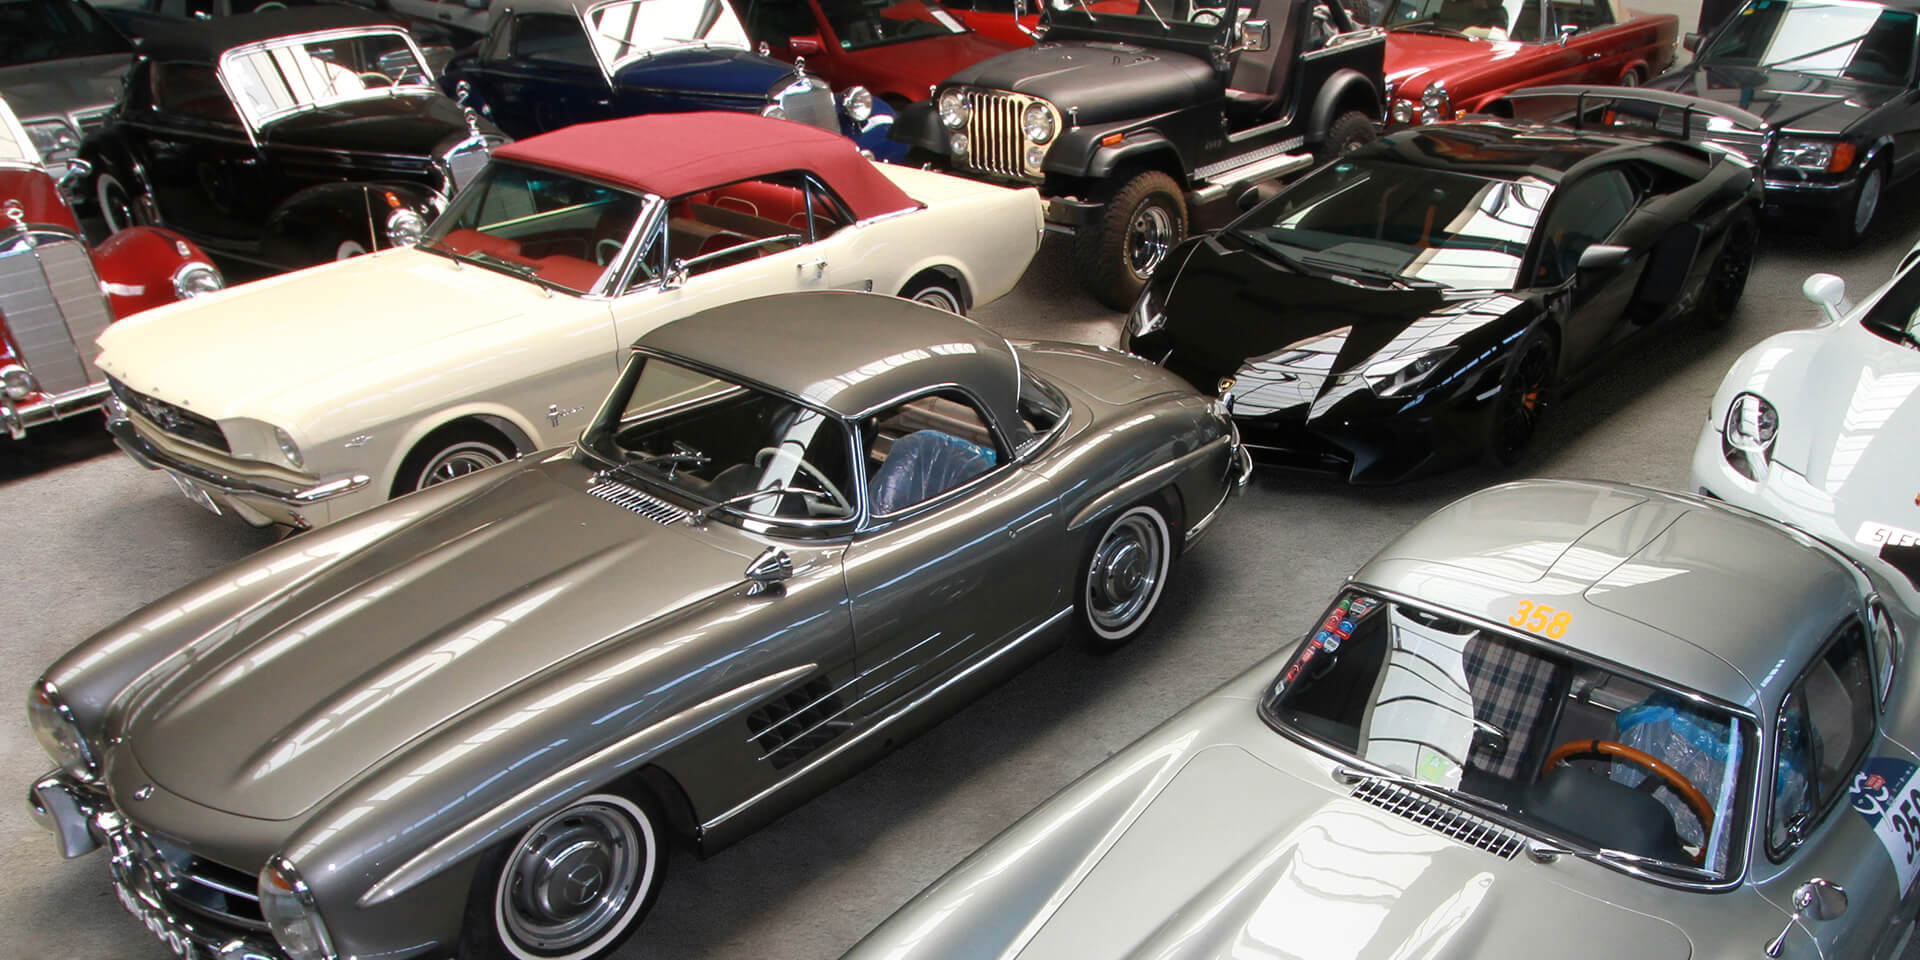 Purchasing vintage Mercedes cars – Kienle can help